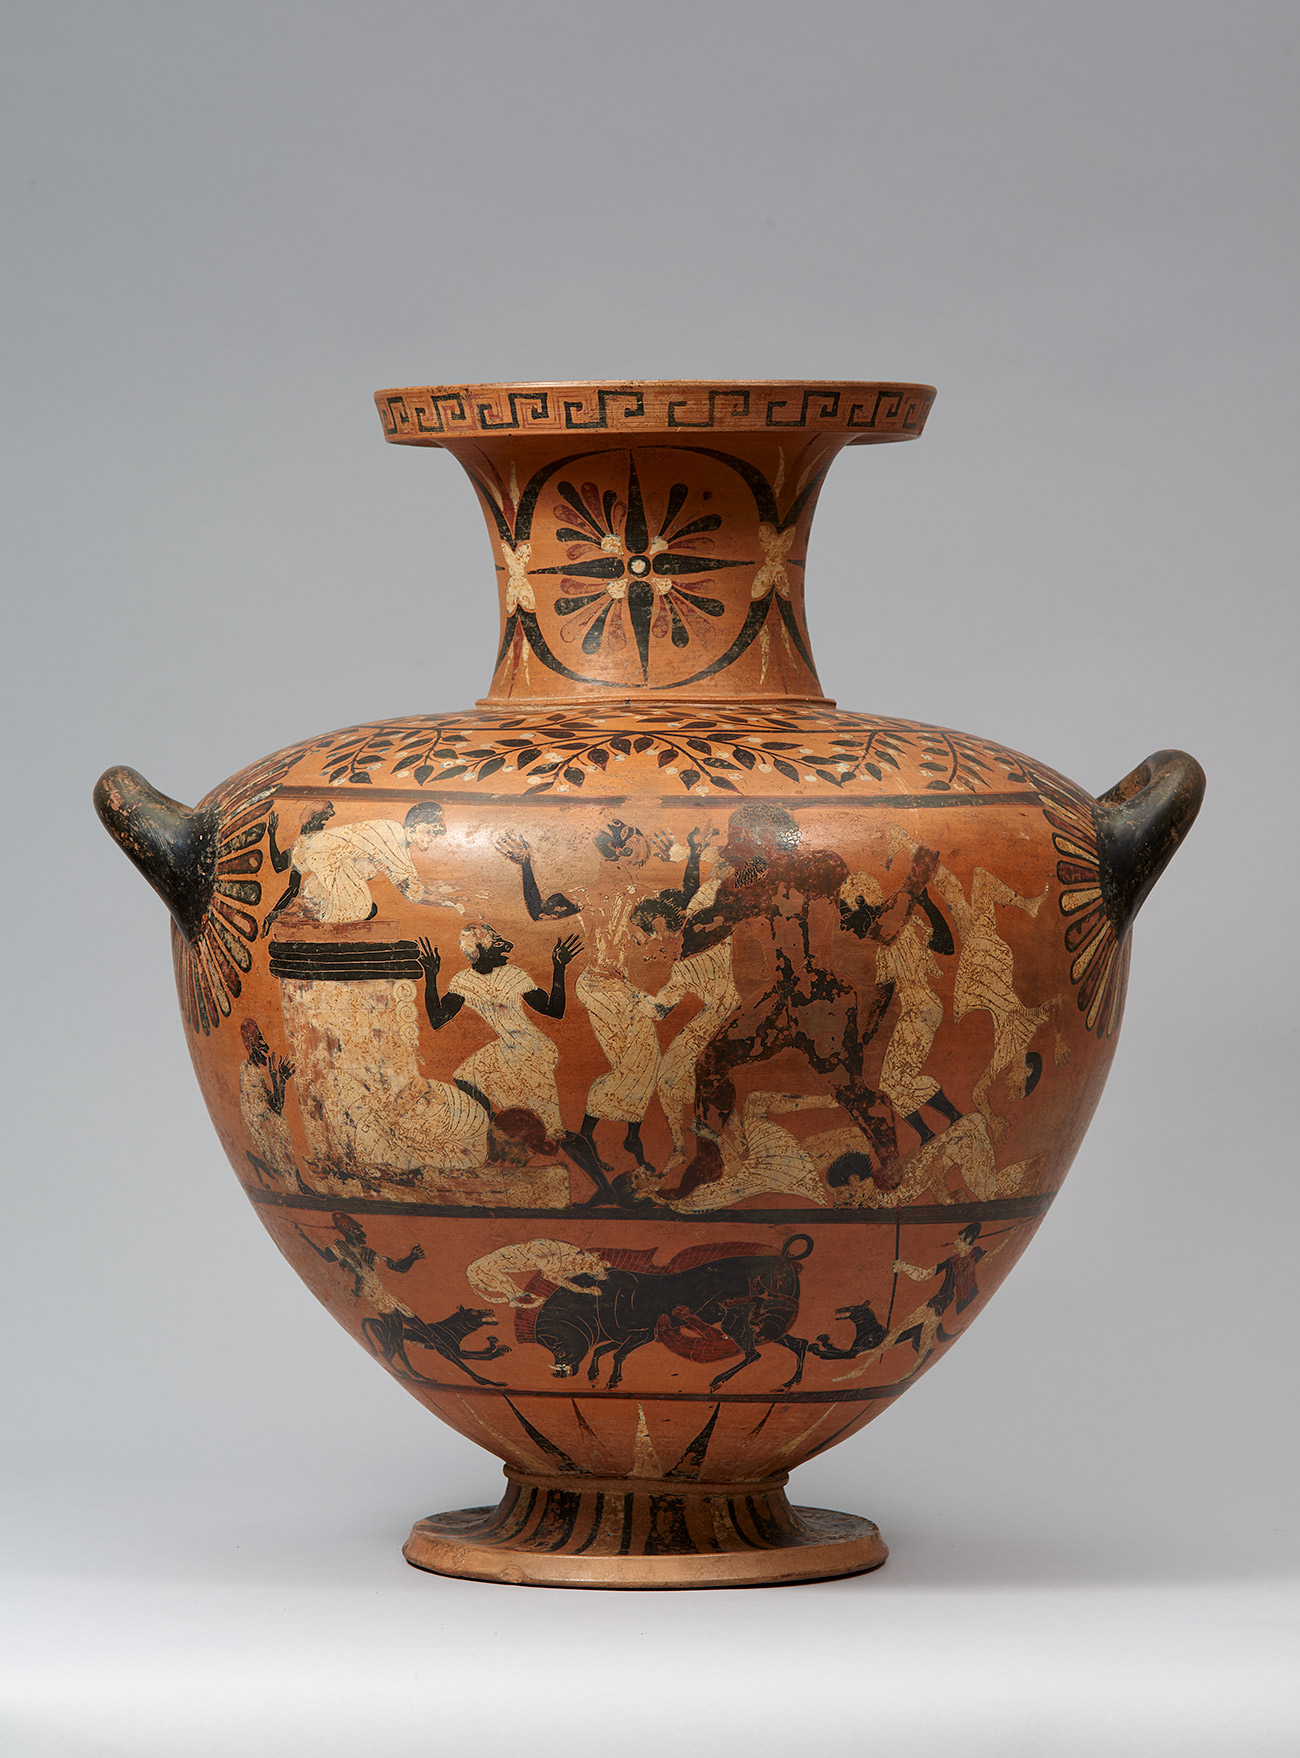 A bulbous jar with a tall lip and two small handles is painted with figures in black and white skin tones